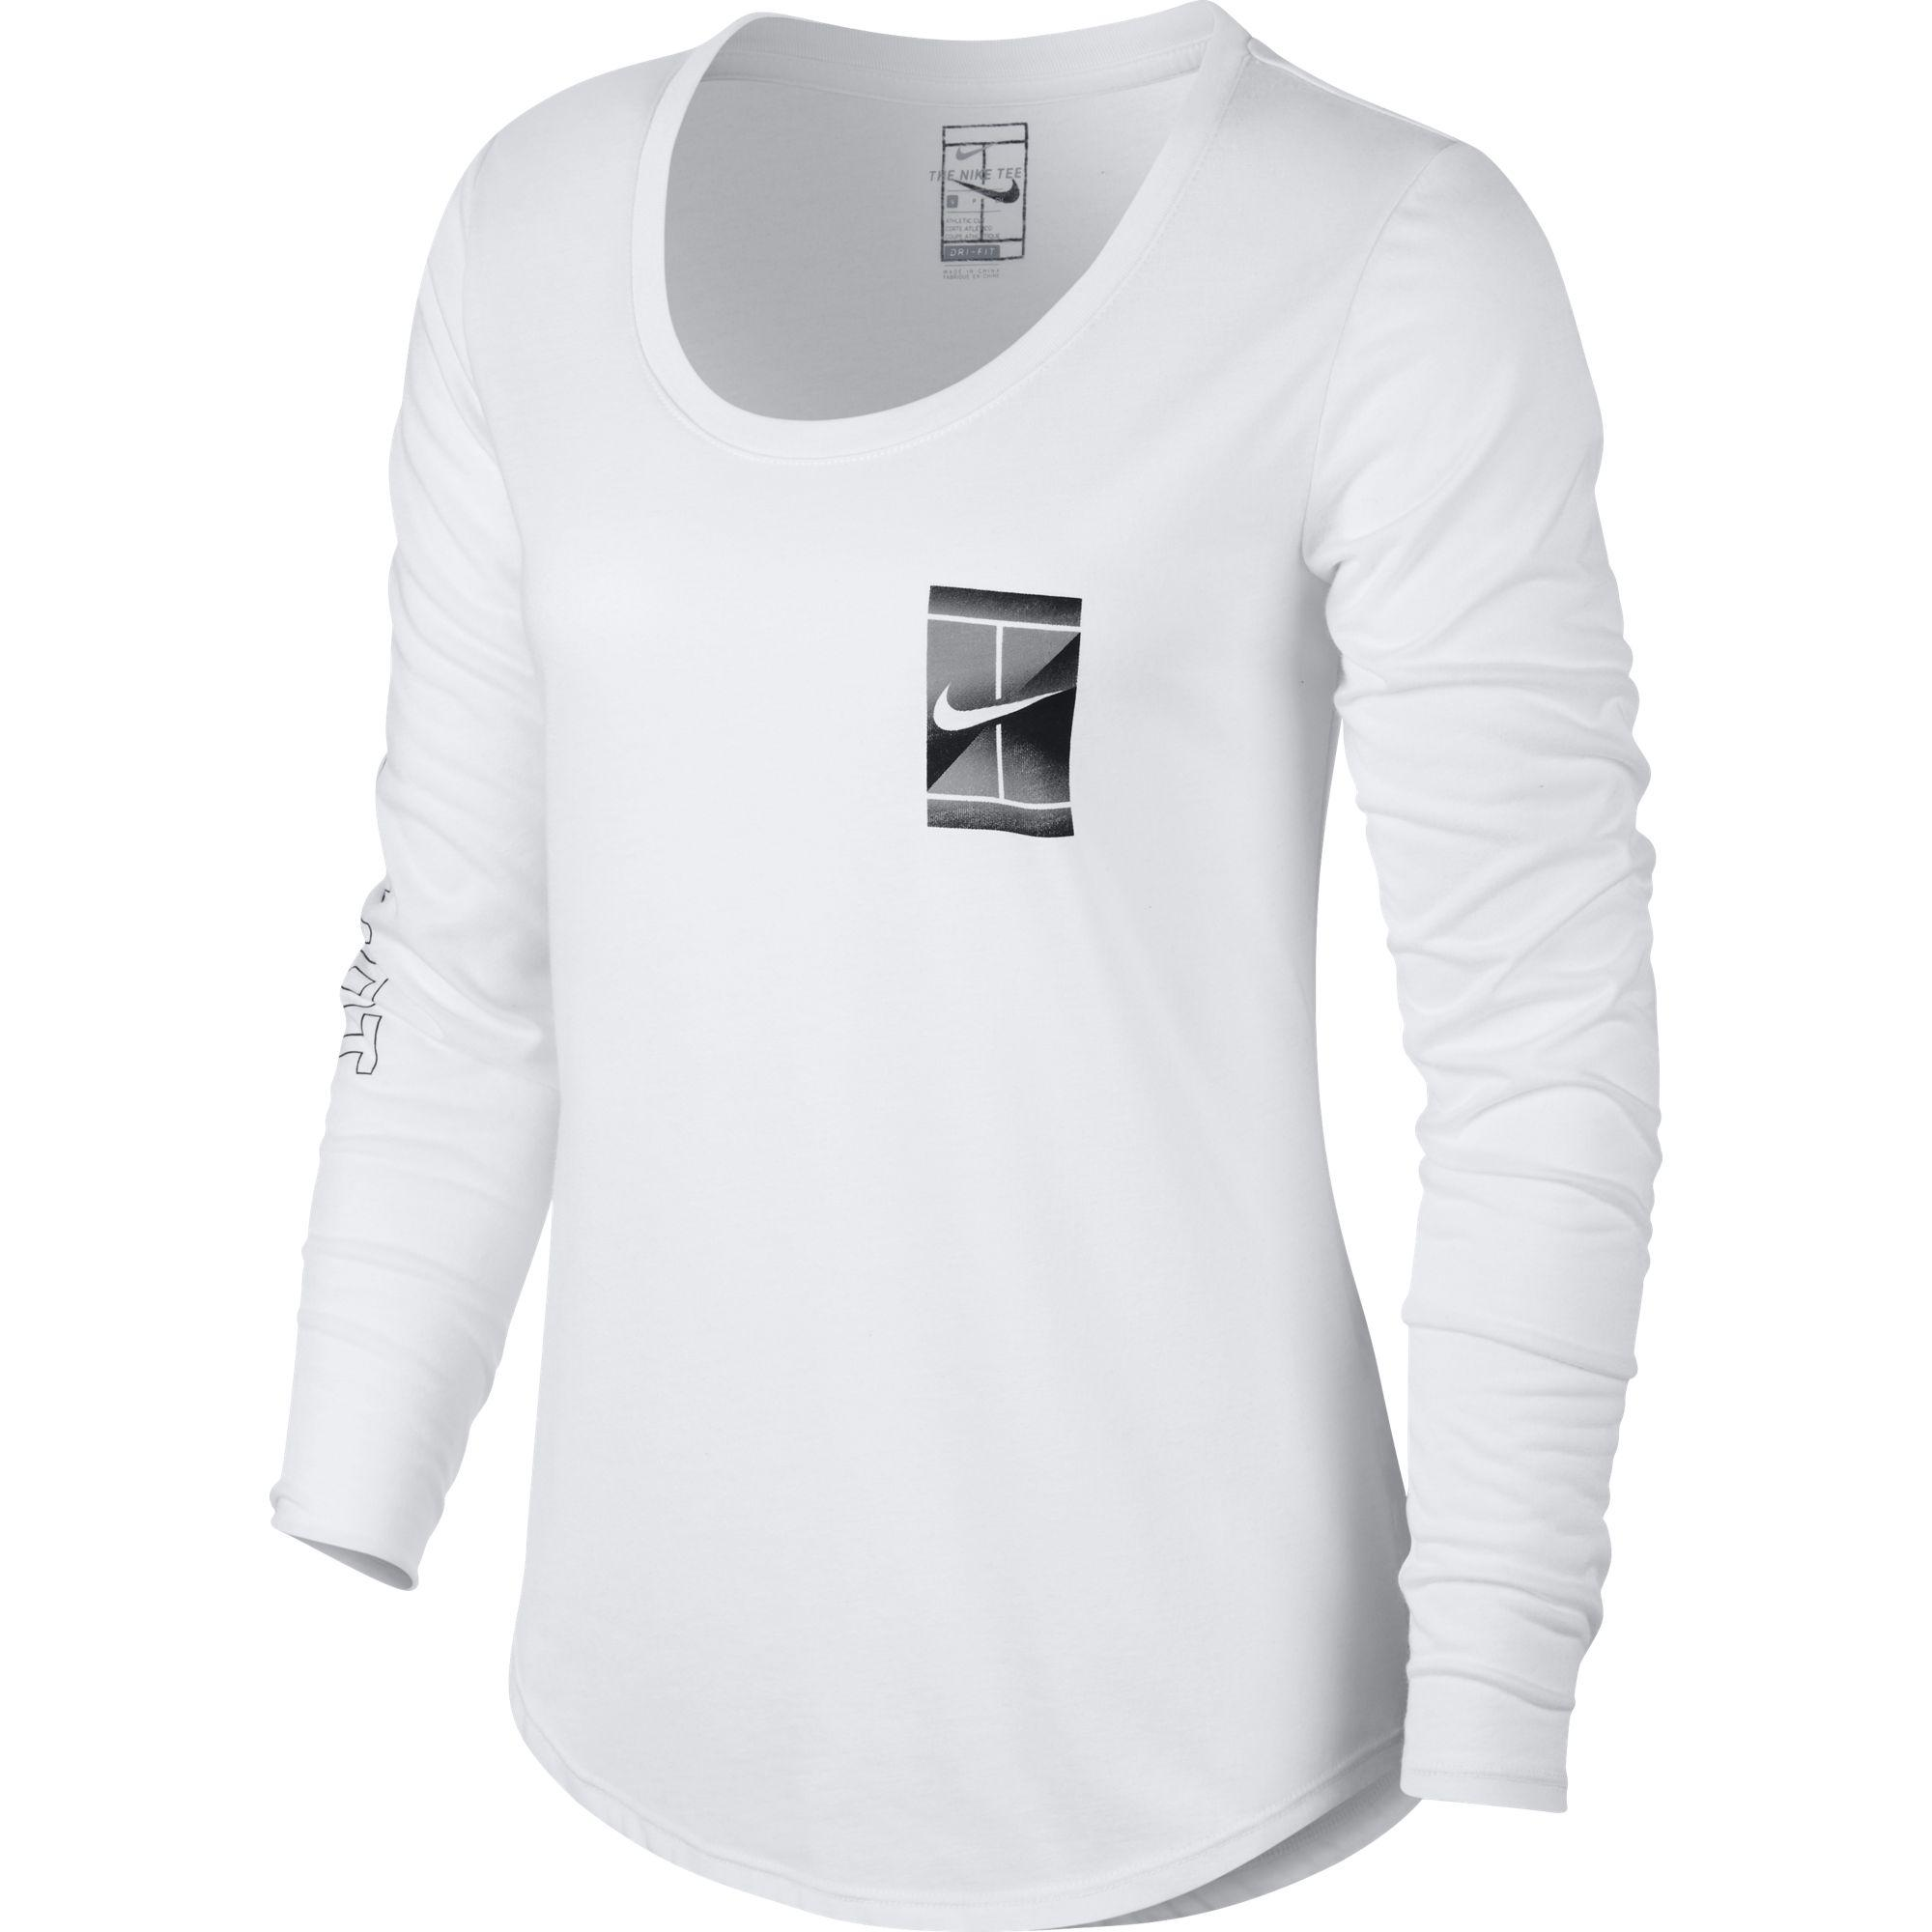 04d34423 Nike Womens Court Dry Long-Sleeve Tennis Top - White - Tennisnuts.com